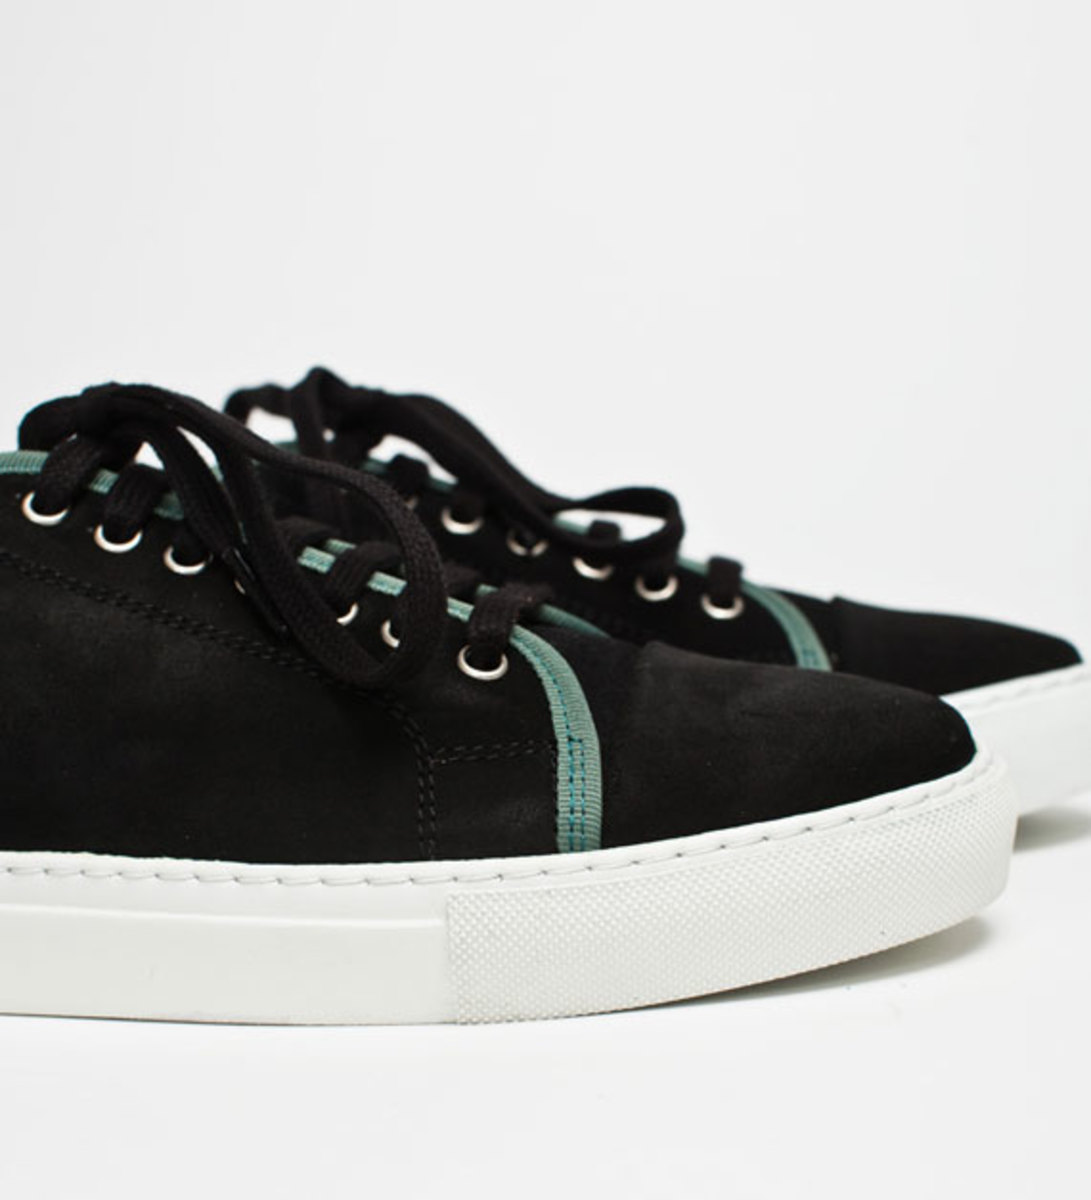 comme-des-garcons-shirt-the-generic-man-fall-2012-footwear-collection-10